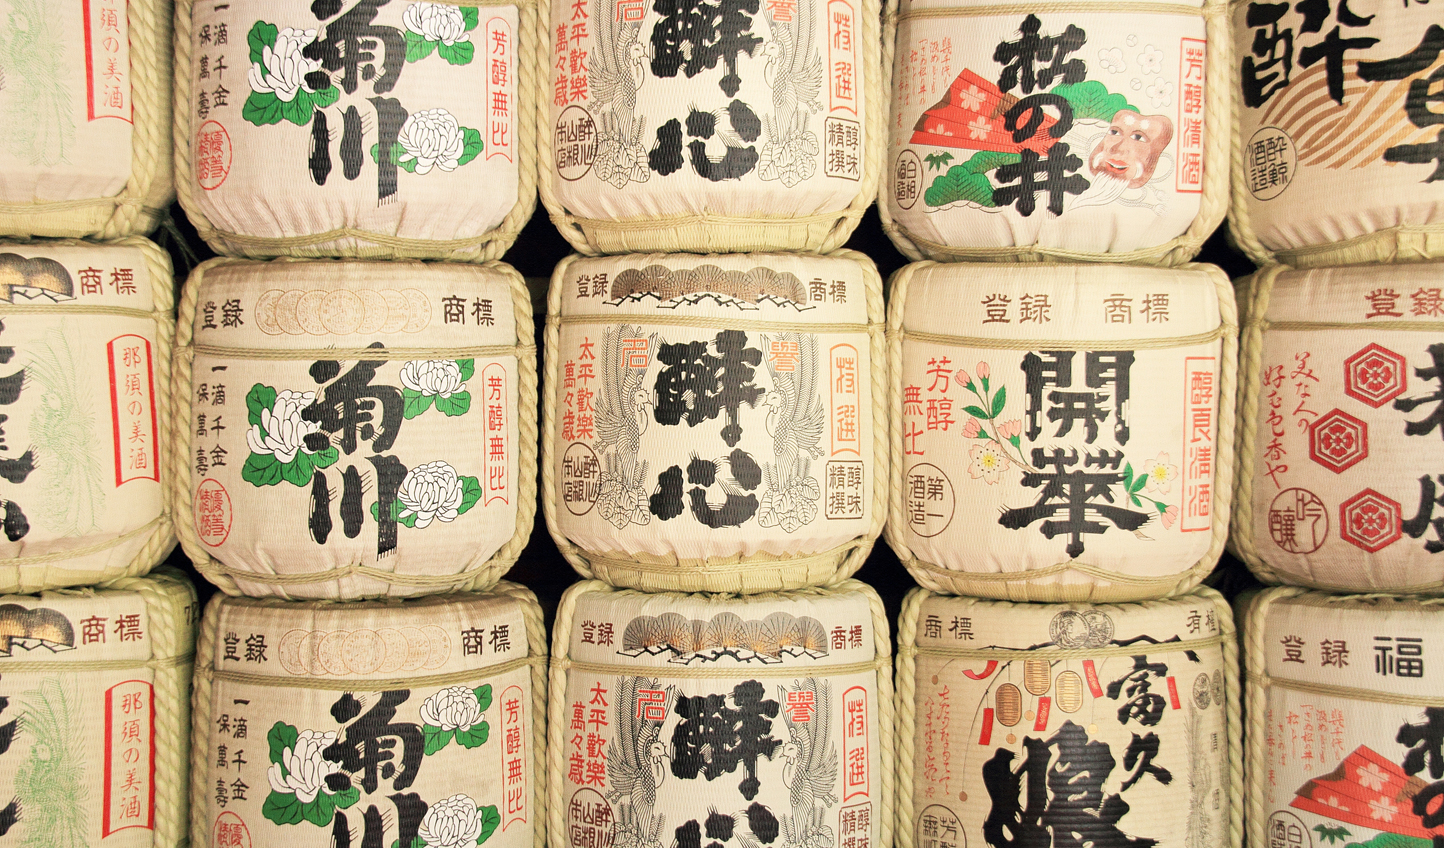 Sake Casts in Japan